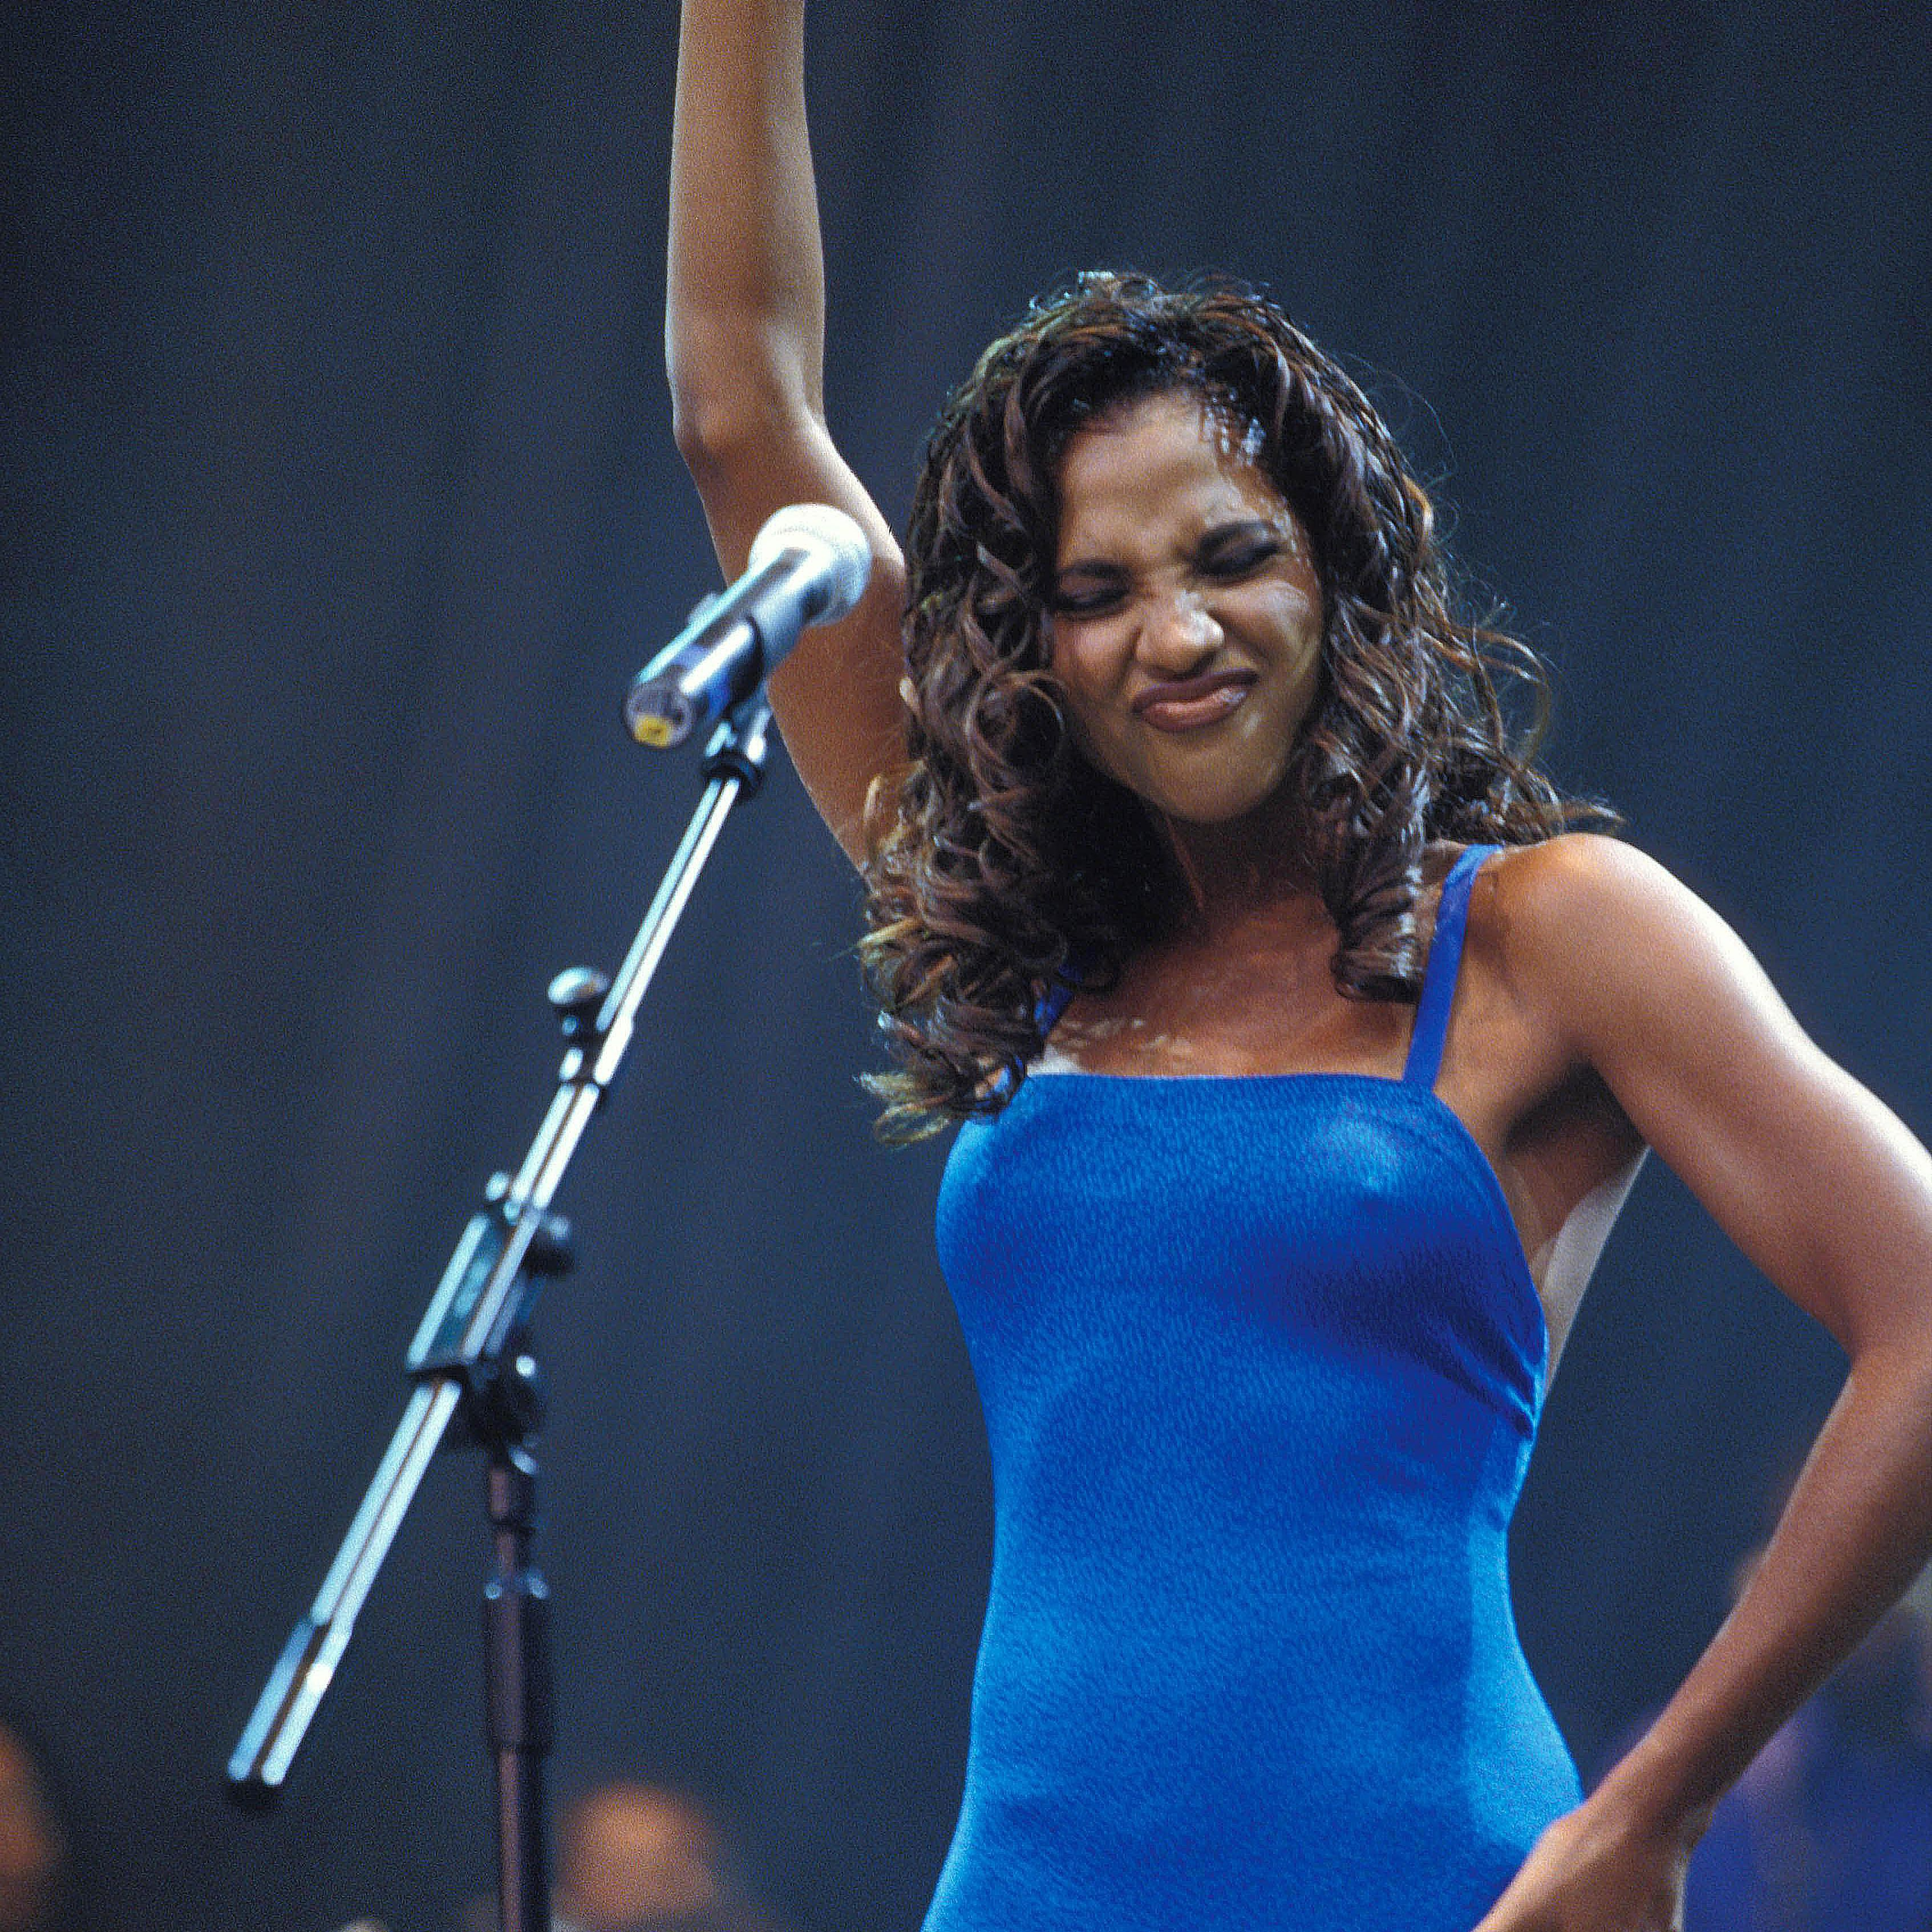 Toni Braxton raising up her right hand at a concert